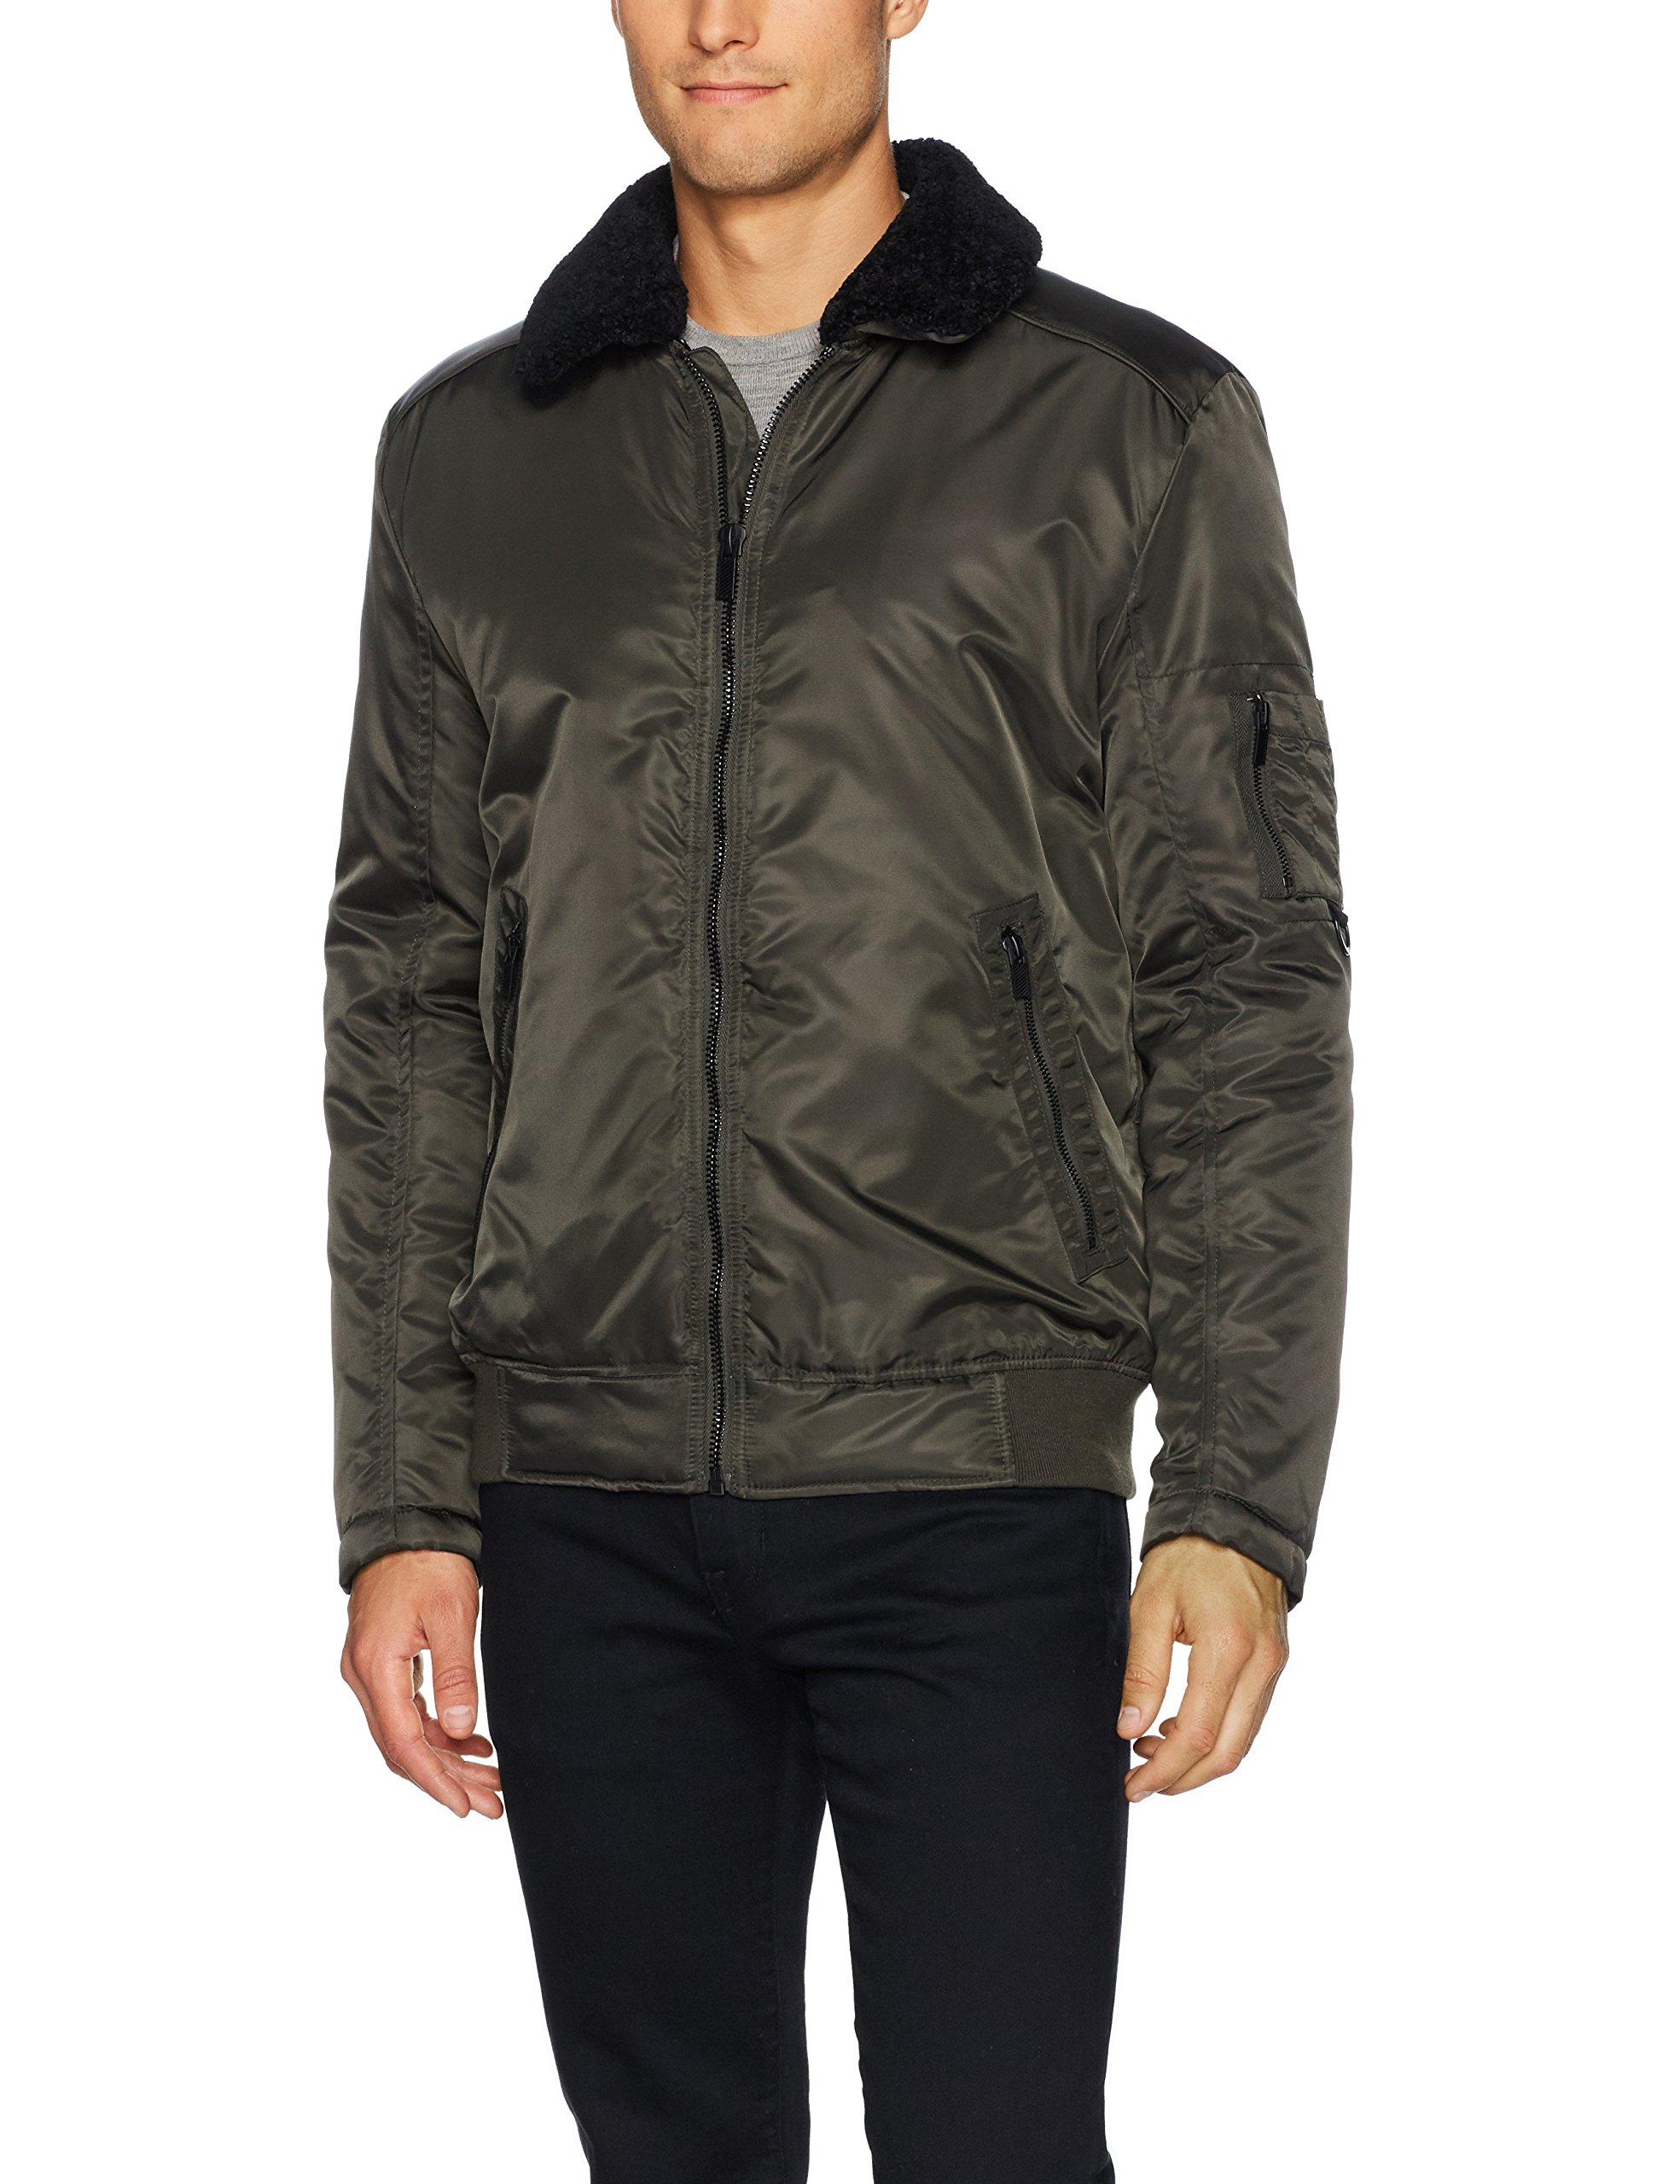 Kenneth Cole New York Men's Aviator Jacket with Removable Faux Sherpa Collar, Olive, Large by Kenneth Cole New York